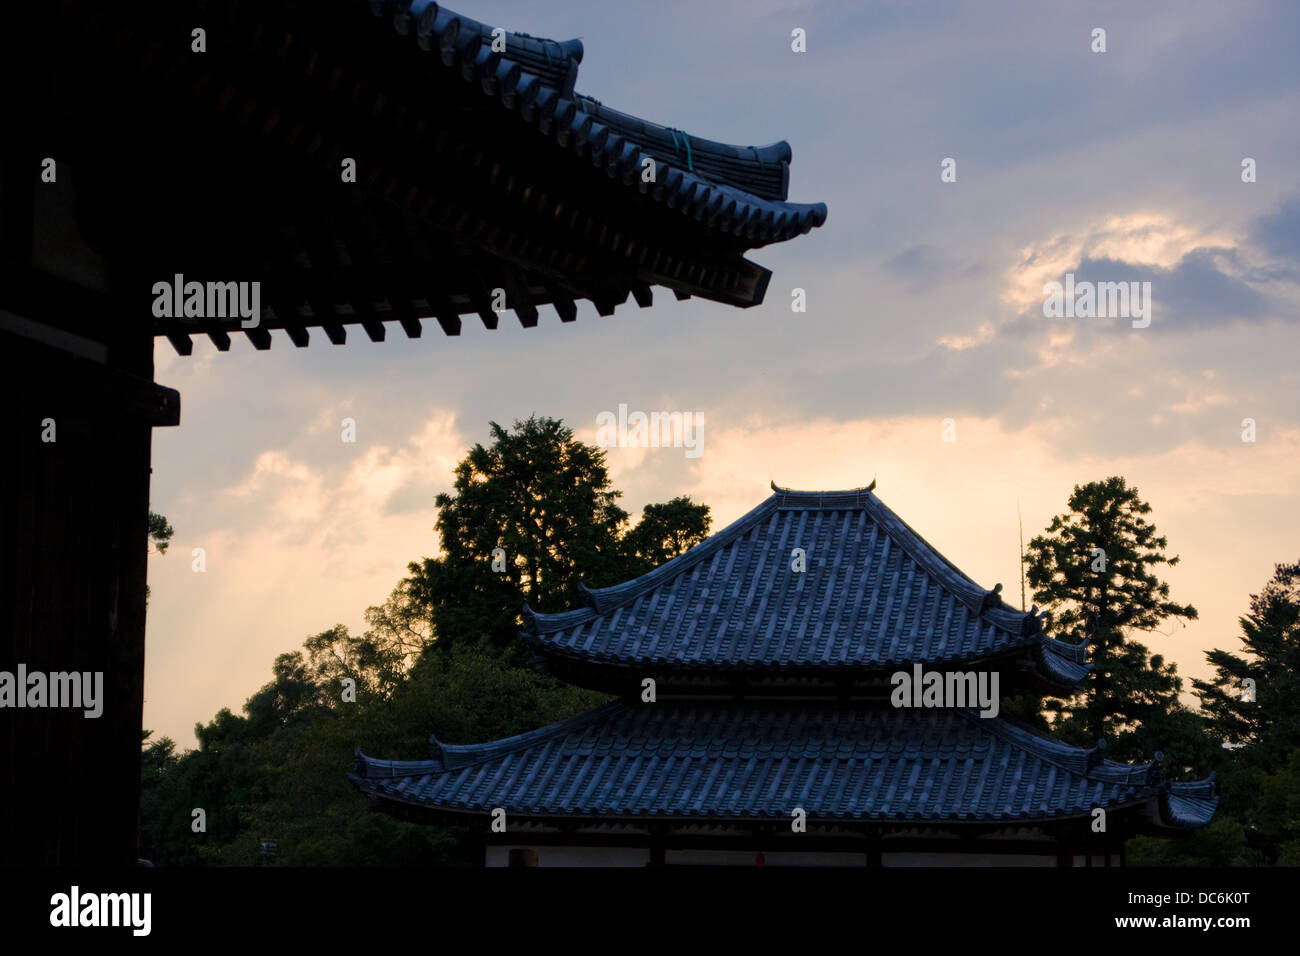 The temples of Nara, Japan, as sunset - Stock Image